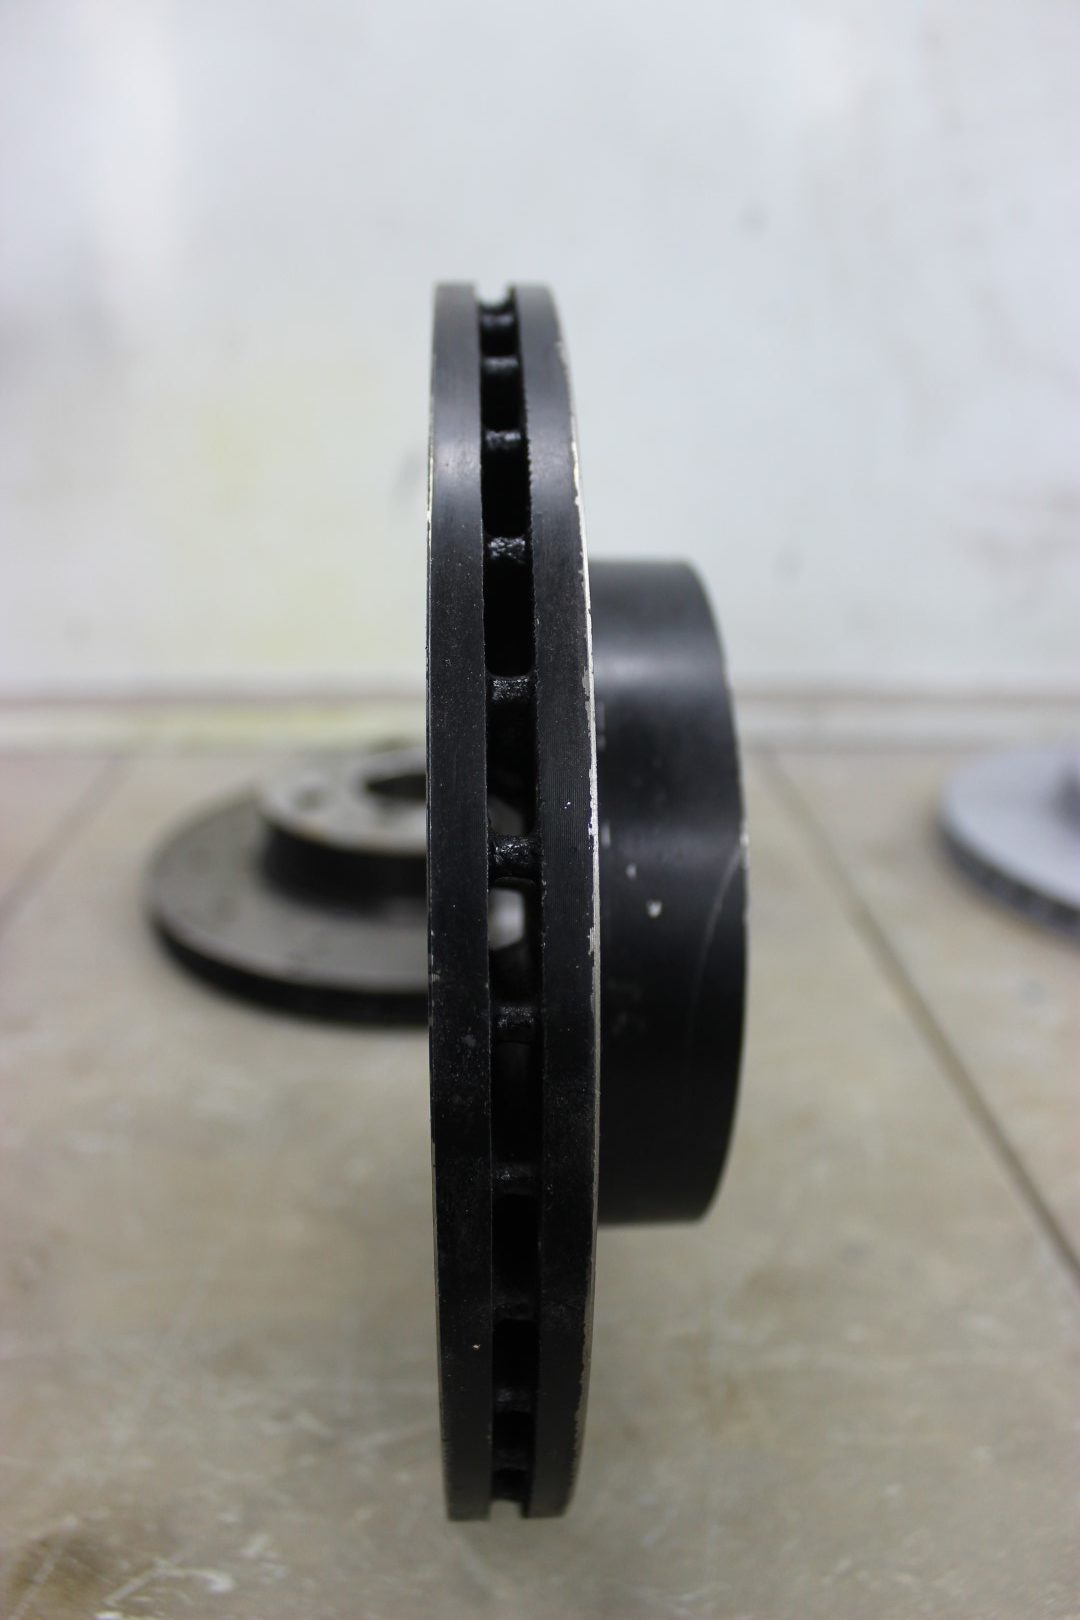 Lateral view of brake rotor